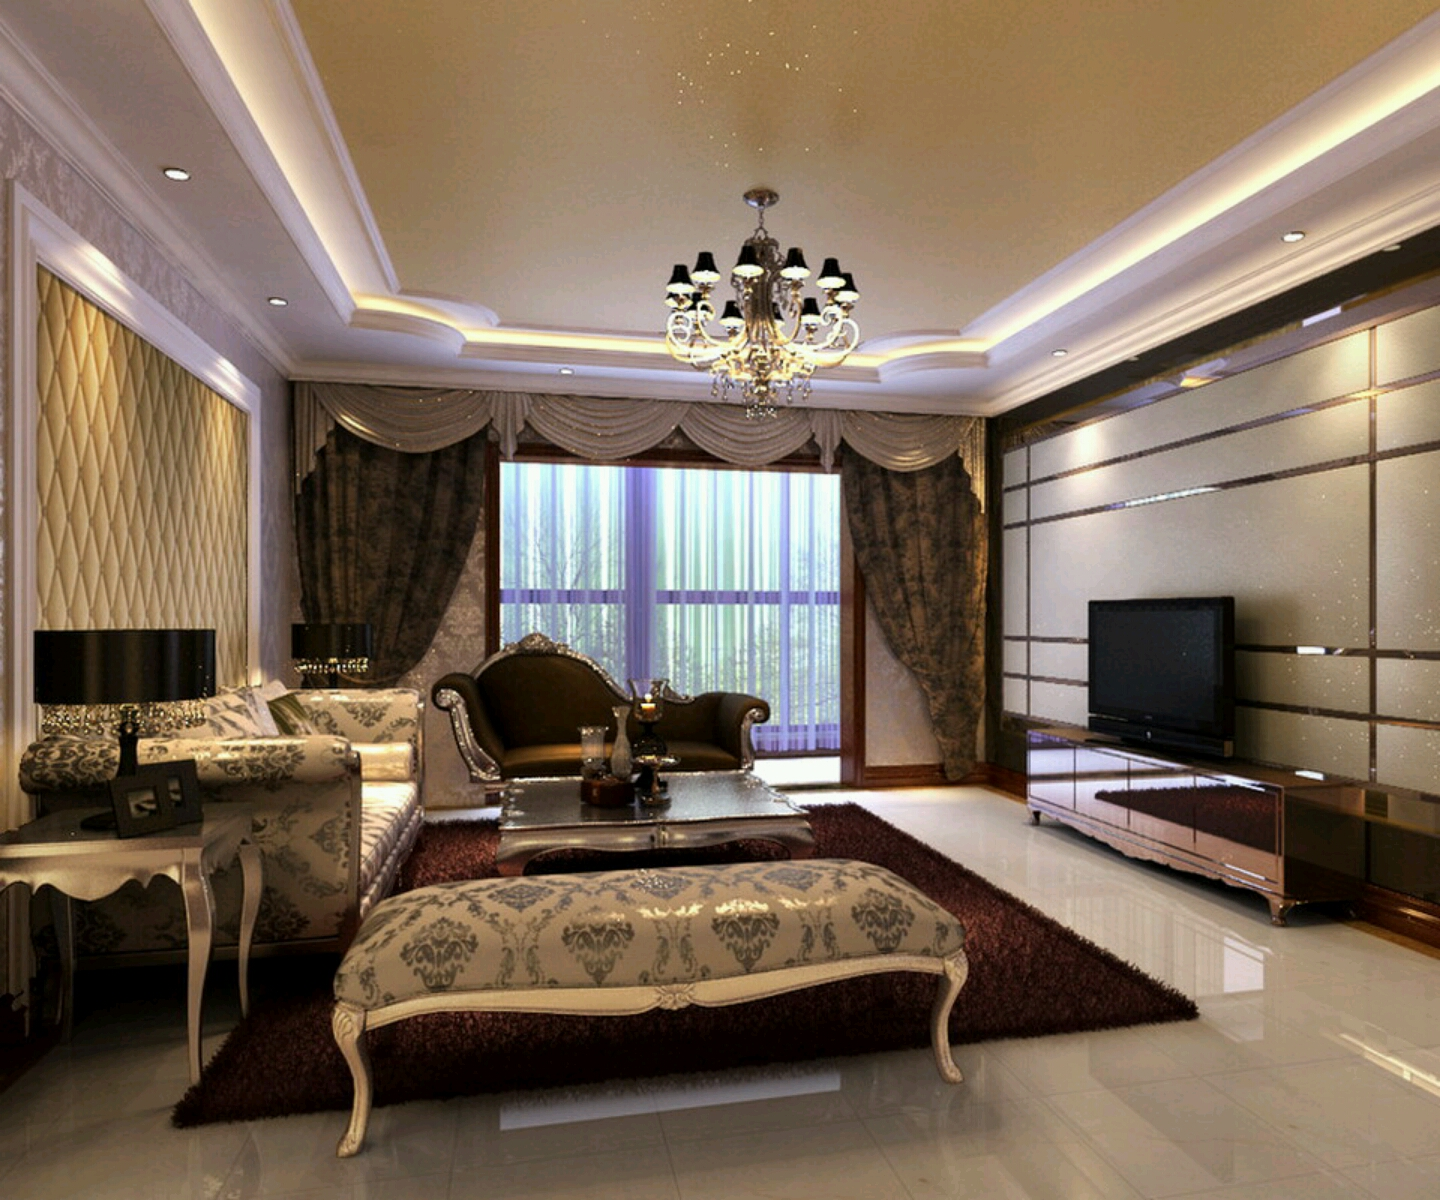 New home designs latest luxury homes interior decoration for Home living room design ideas